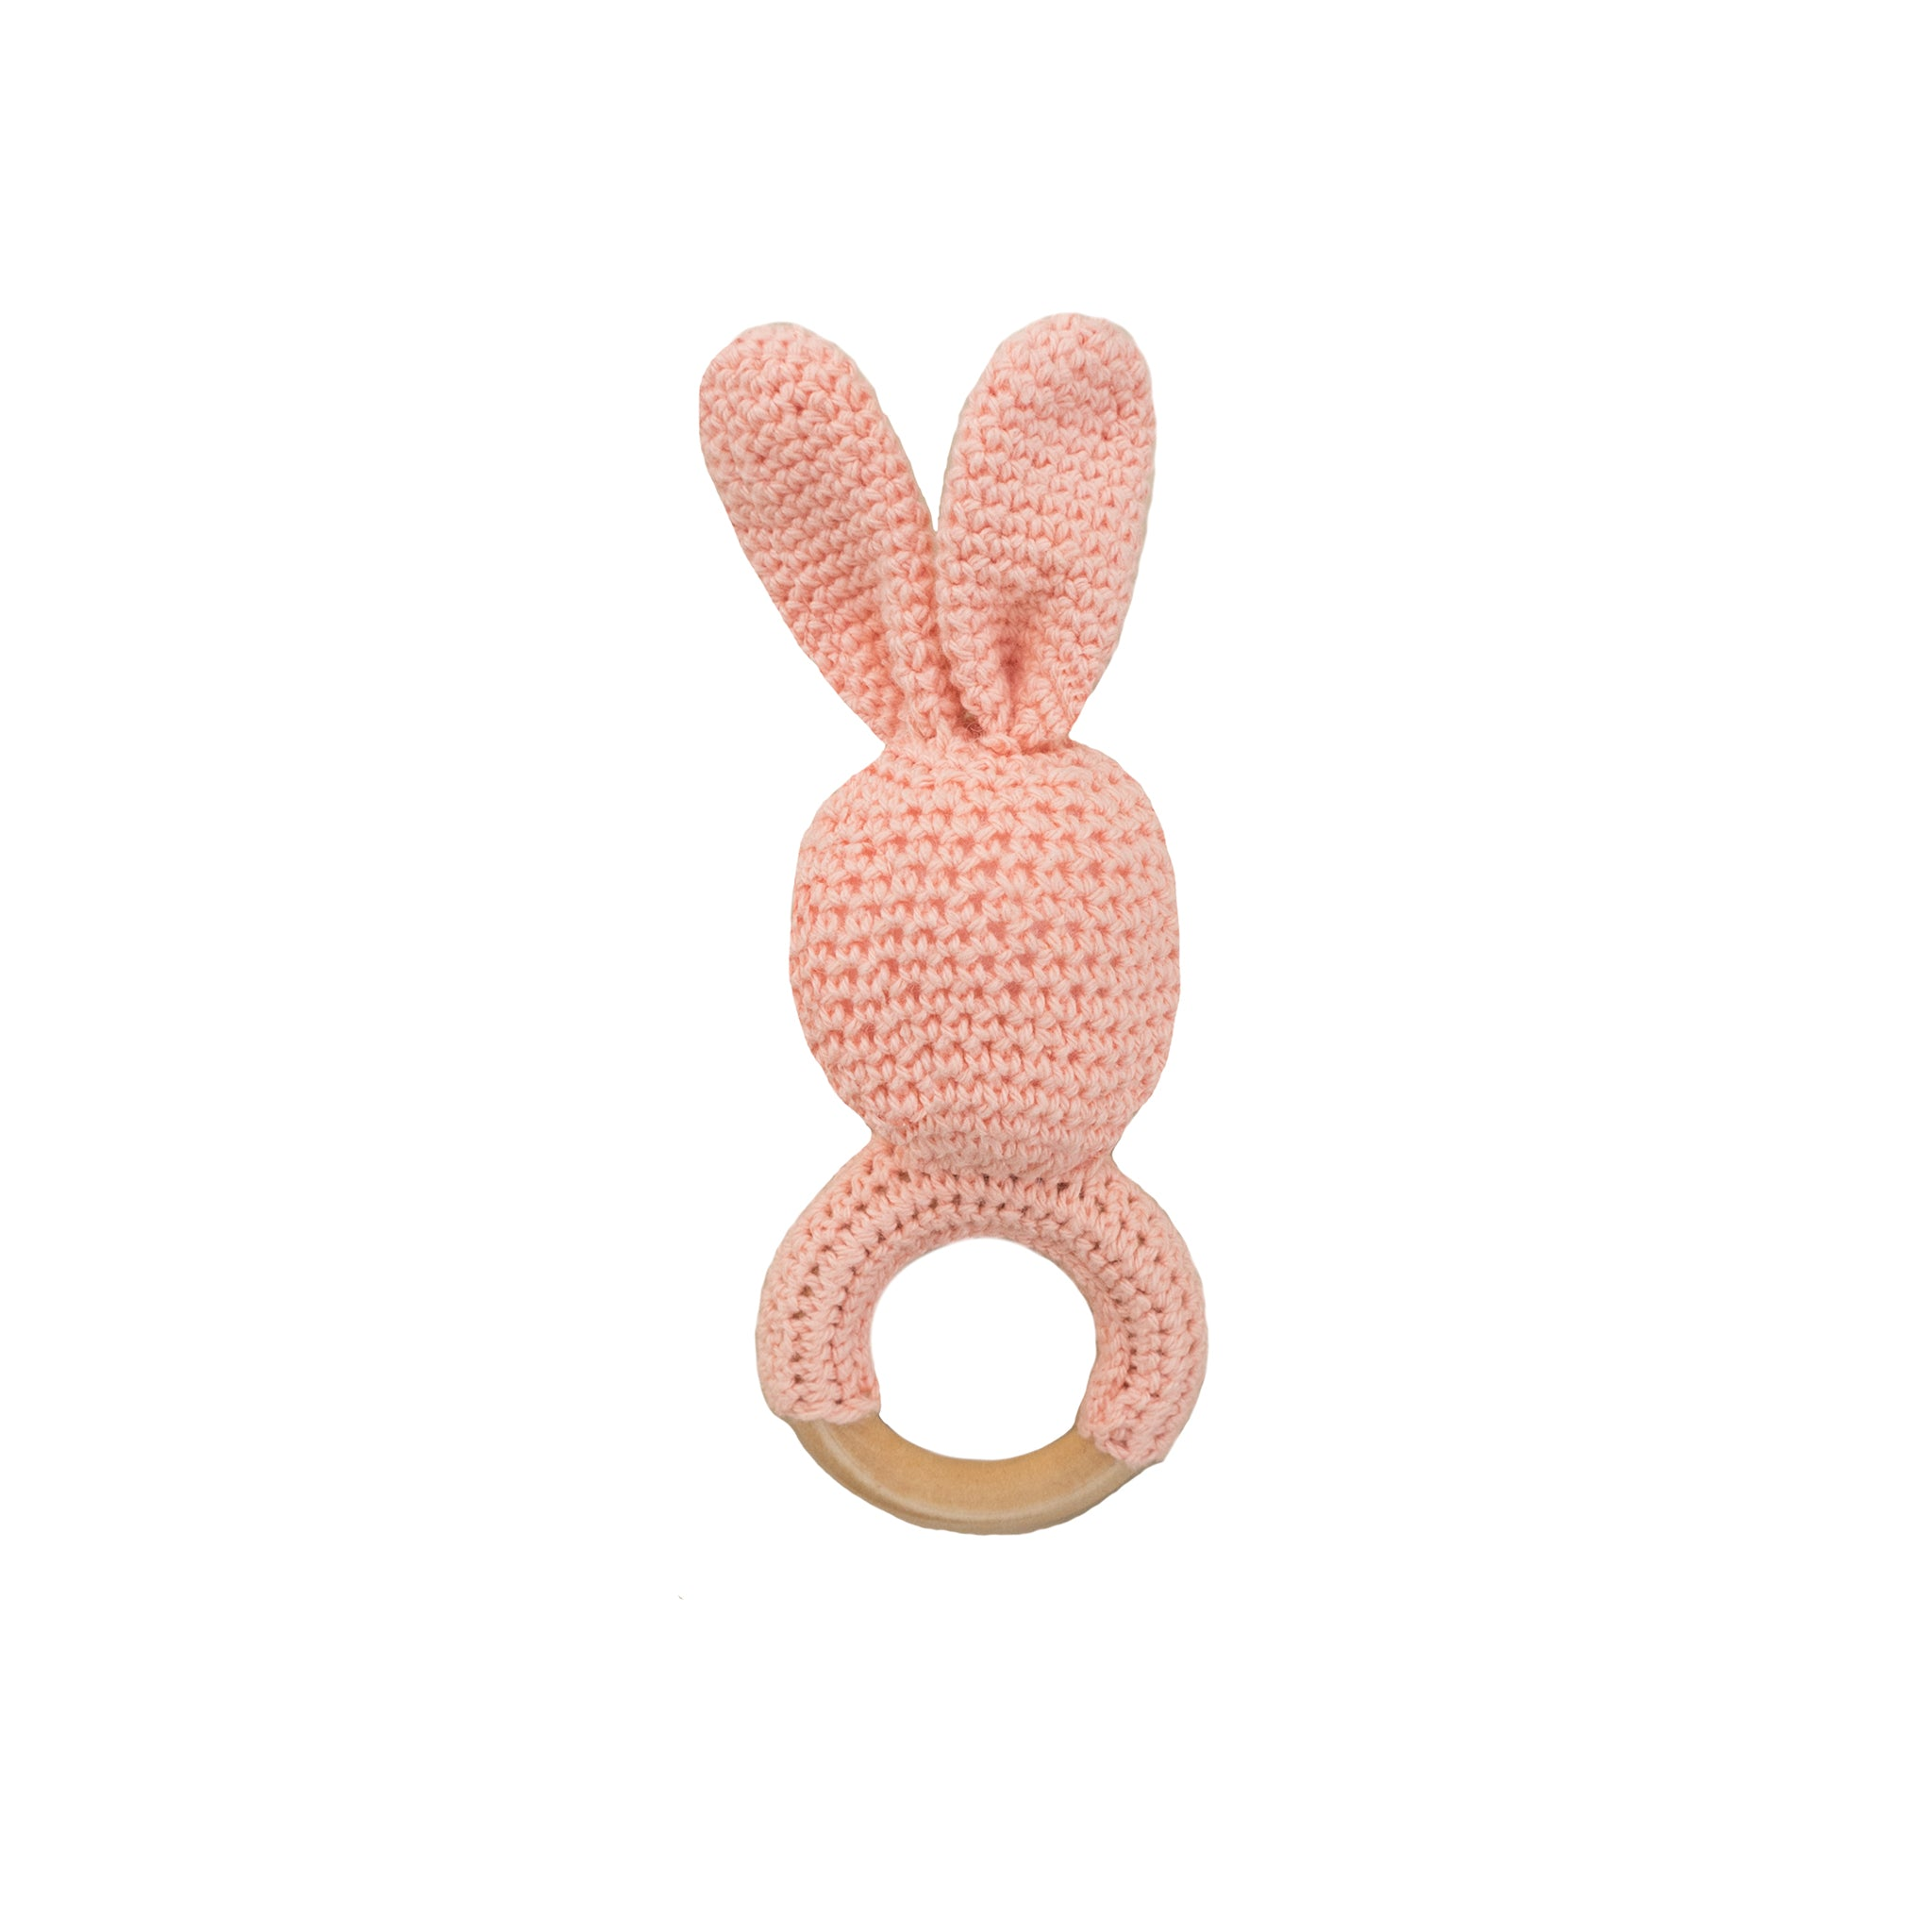 crochet wooden teether- peach